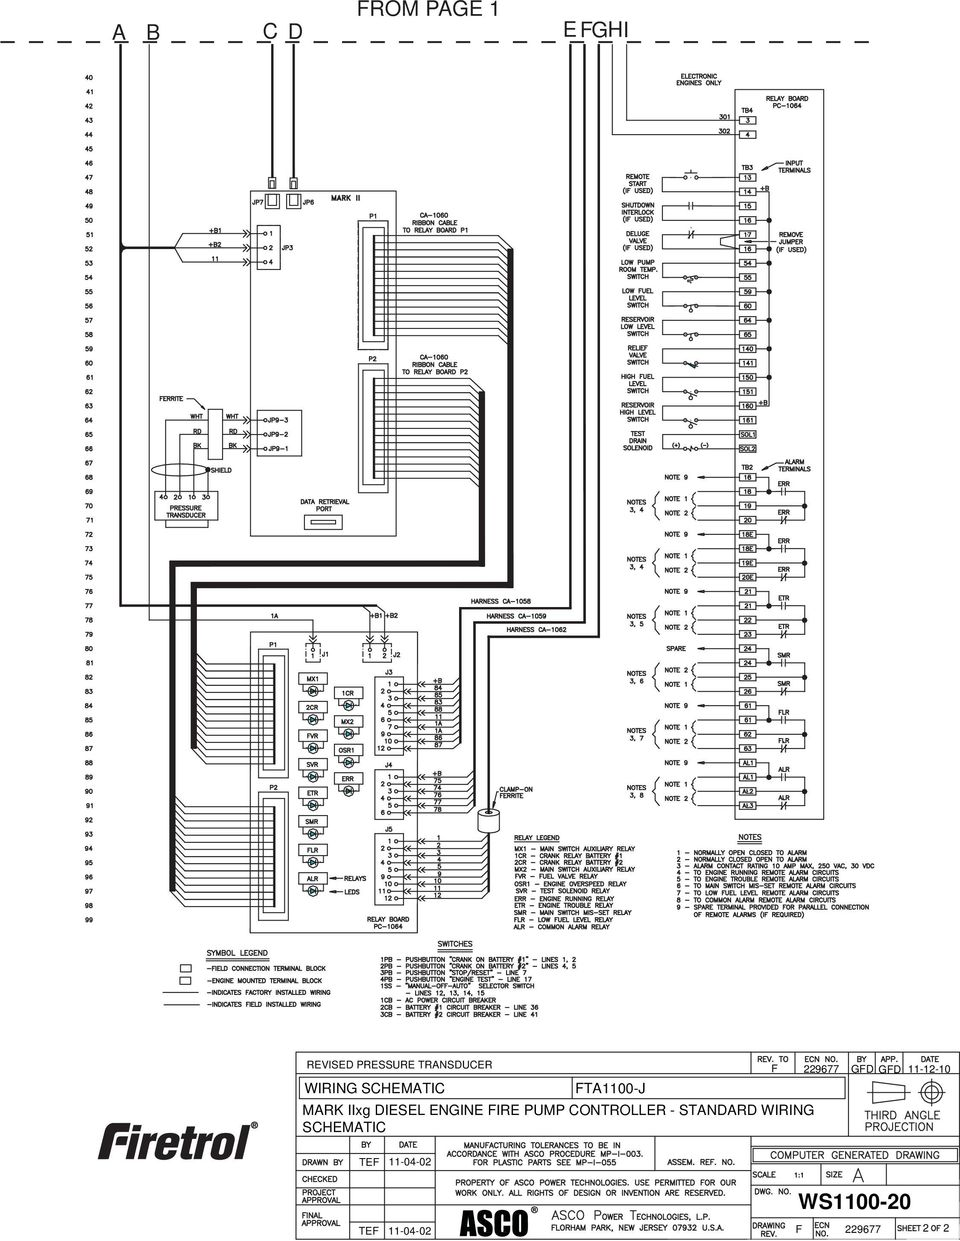 FTA1100-J SEL ENGINE FIRE PUMP CONTROLLERS STANDARD SUBMITTAL ... on fire pump assembly diagram, fire pump components diagram, hale fire pump diagram, fire engine pump plumbing diagram, fire pump sensing line diagram, vacuum pump schematic diagram, fire pump block diagram, fire pump layout diagram, fire pump panel diagram, fire pump discharge pressure, fire pump exploded view, fire pump cover, fire pump wiring diagram, fire pump sprinkler system diagram, water pump schematic diagram, oil pump schematic diagram, sump pump schematic diagram, fire pump control panel, typical fire pump diagram, fire pump motor diagram,